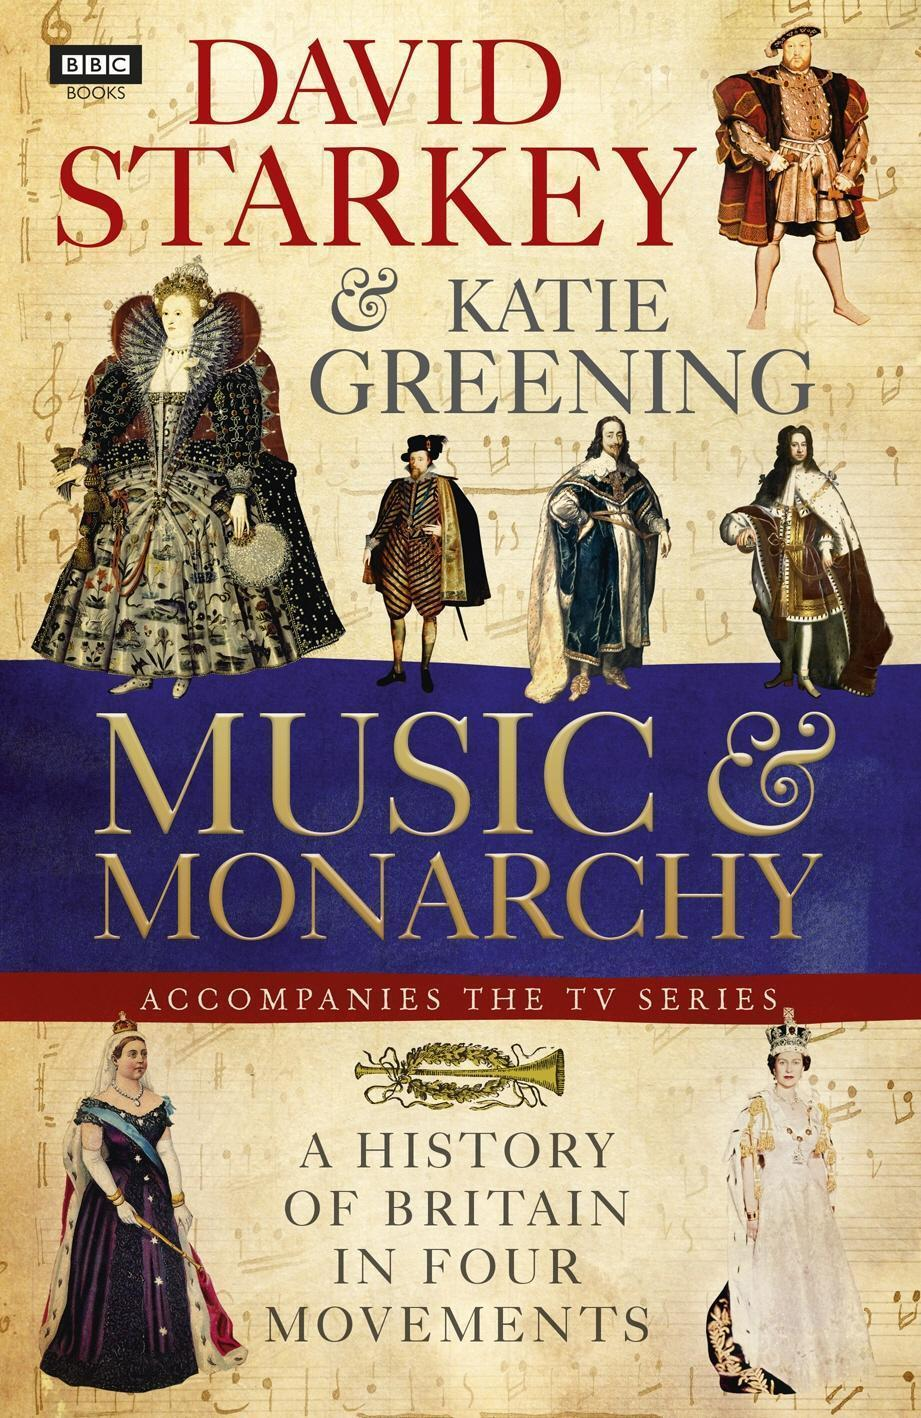 David Starkey's Music and Monarchy